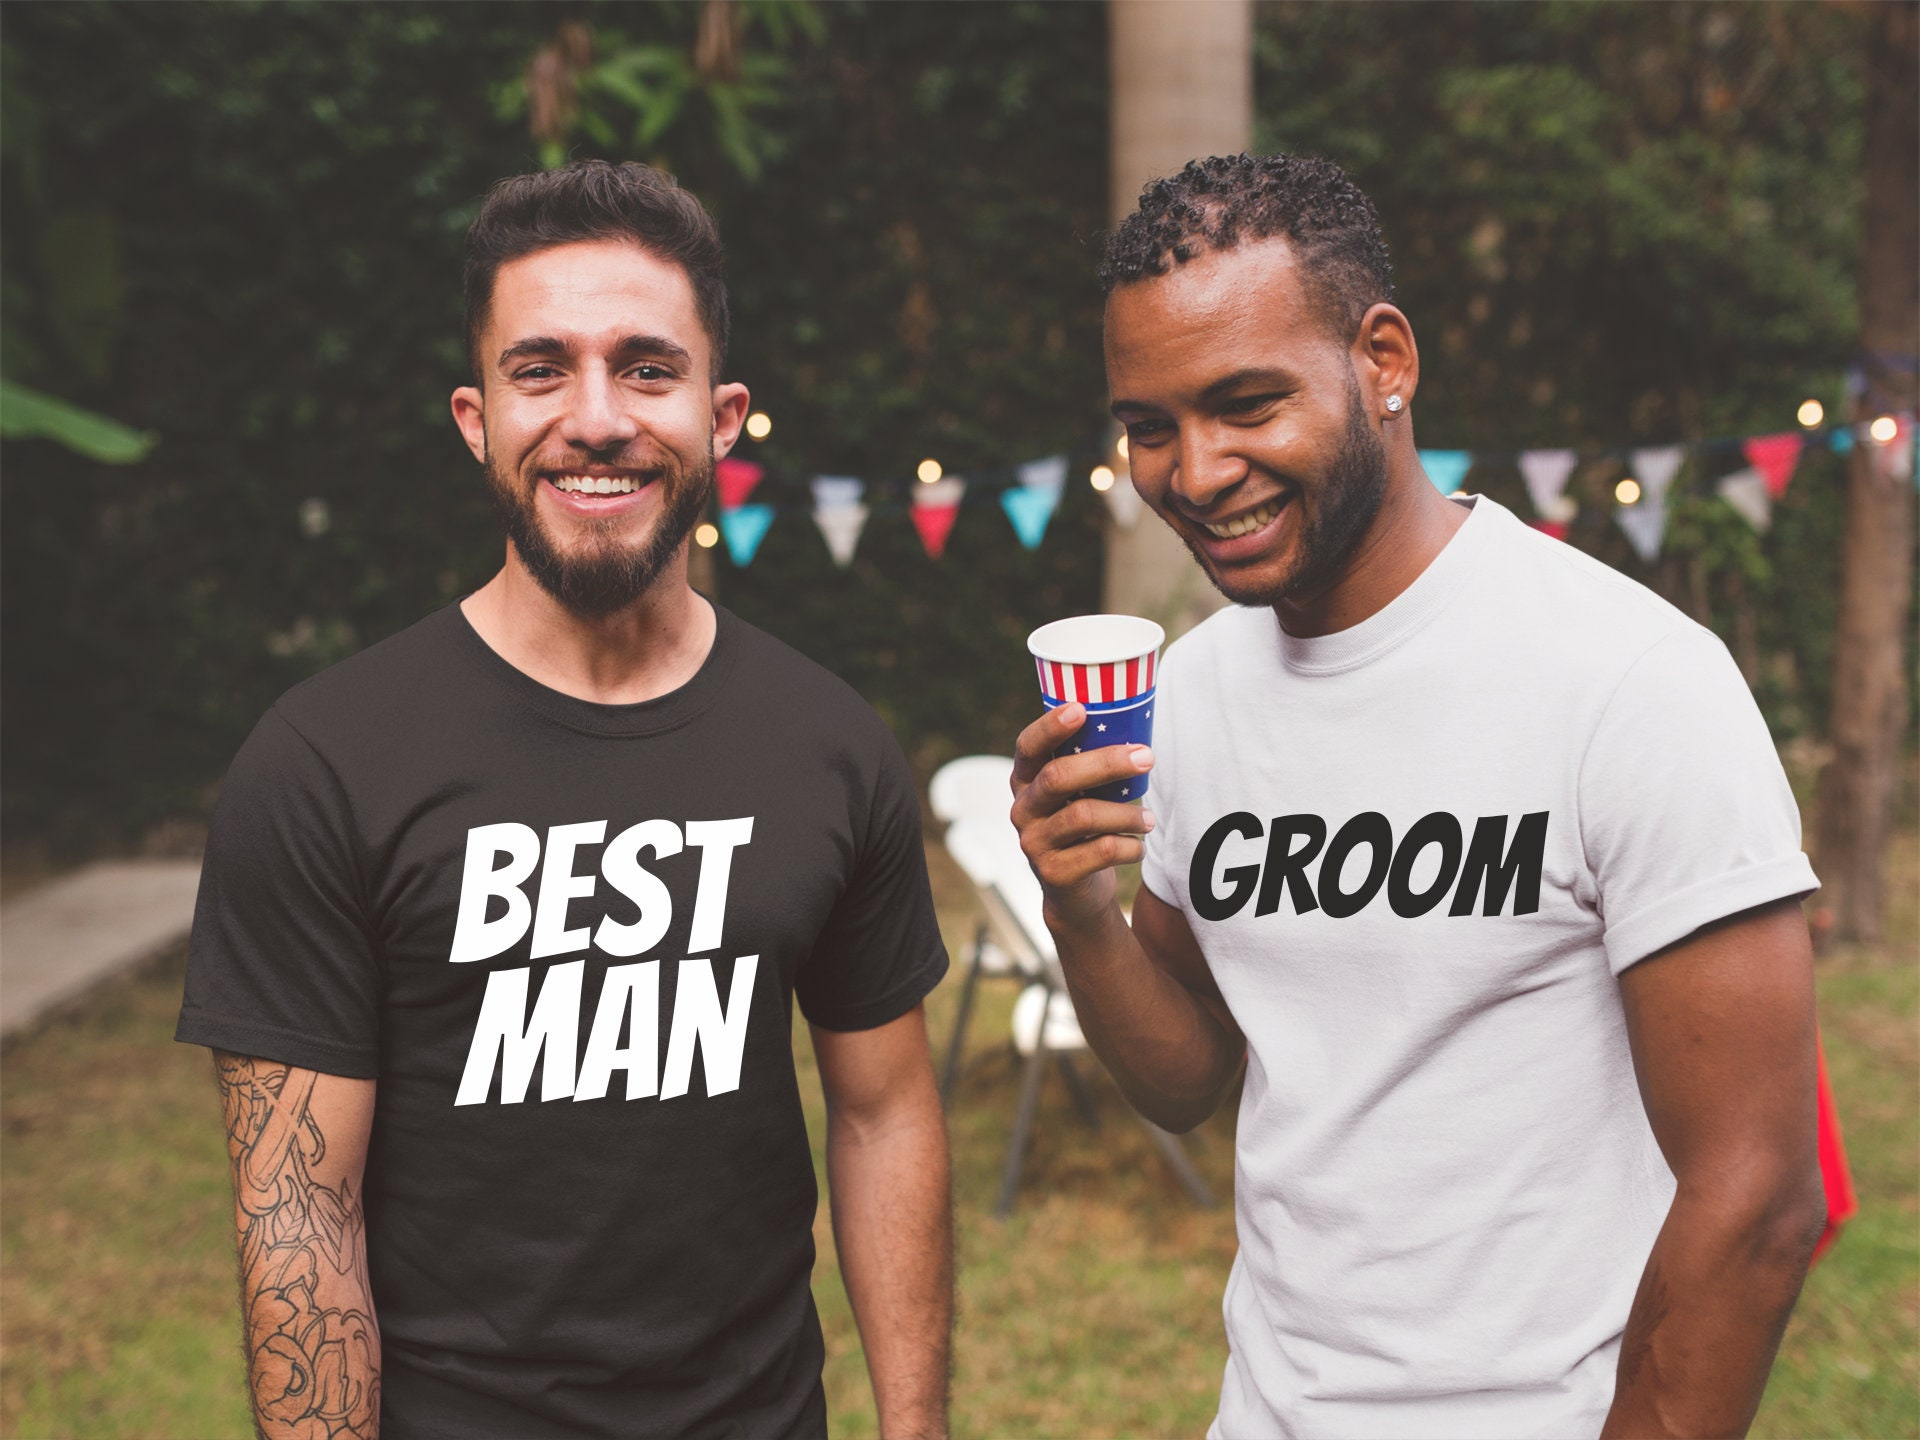 8c869a9a Bachelor Party Shirts, Groom, Best Man, and Groomsmen Tshirts, Stag Party  Gift, Groomsman Gift, Groomsmen Proposal Ideas, Be My Groomsman